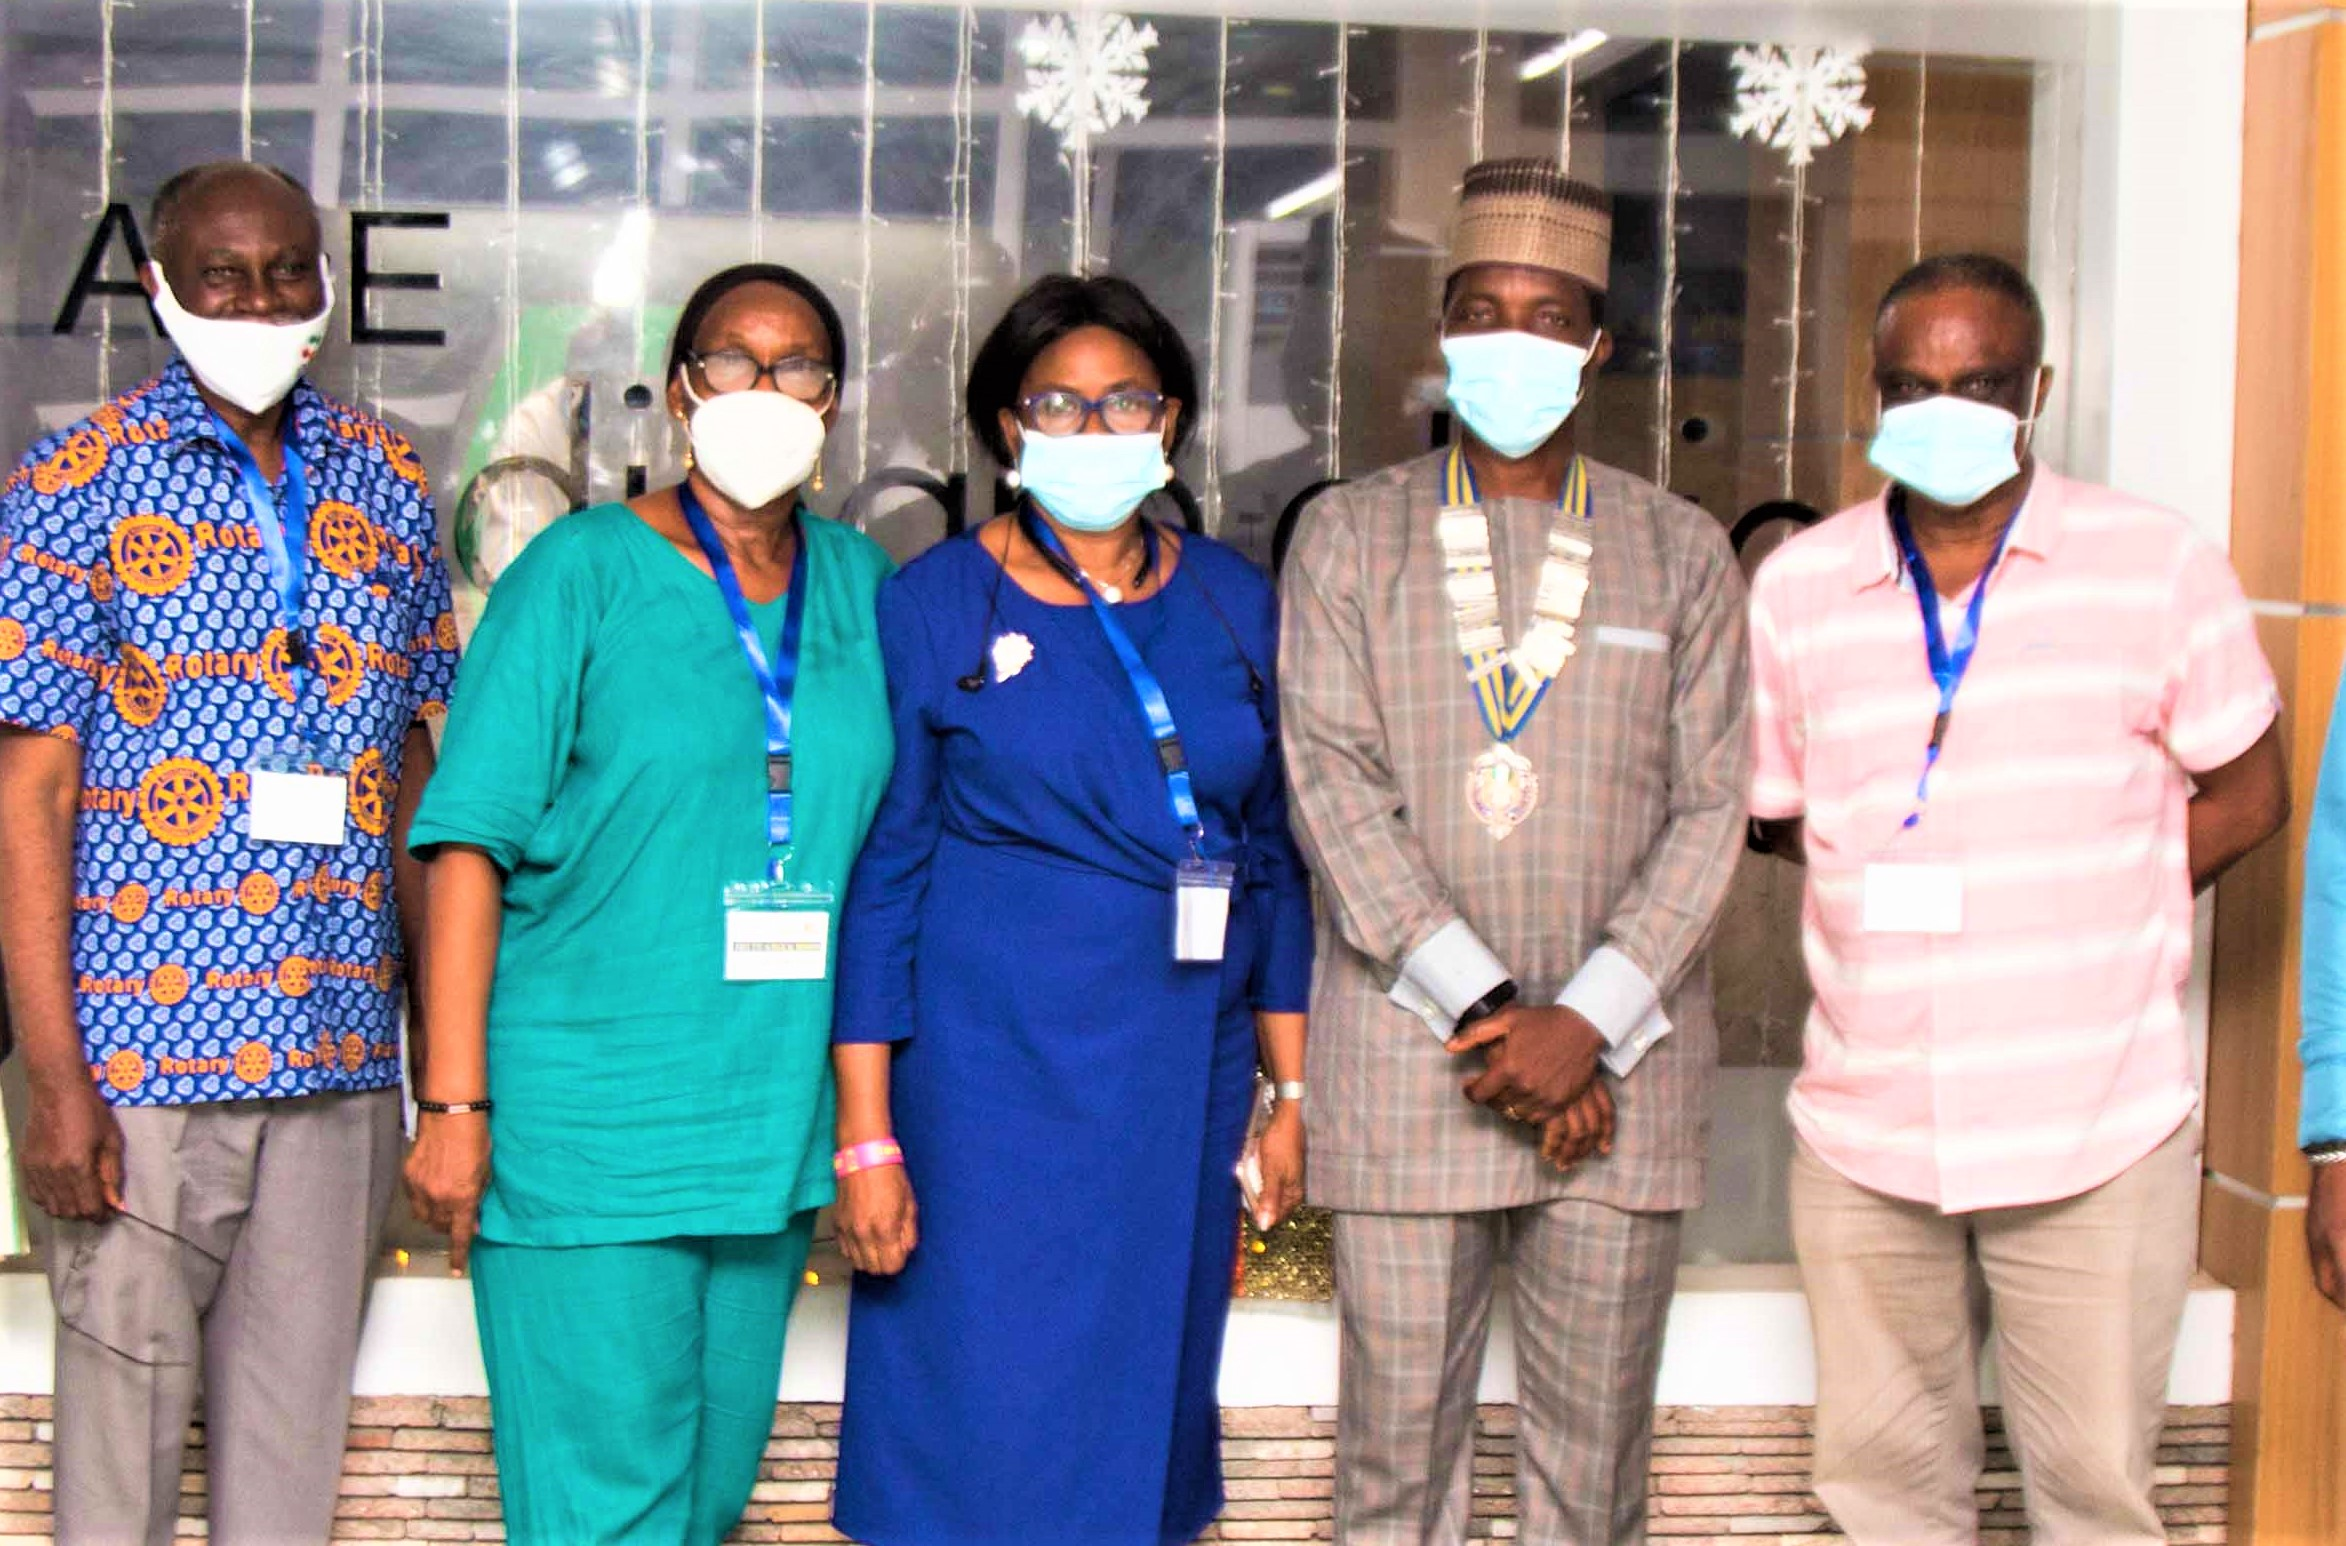 Rotary D9110 performs Free Cataract Surgeries on 100 Residents of Lagos and Ogun States brandspurng